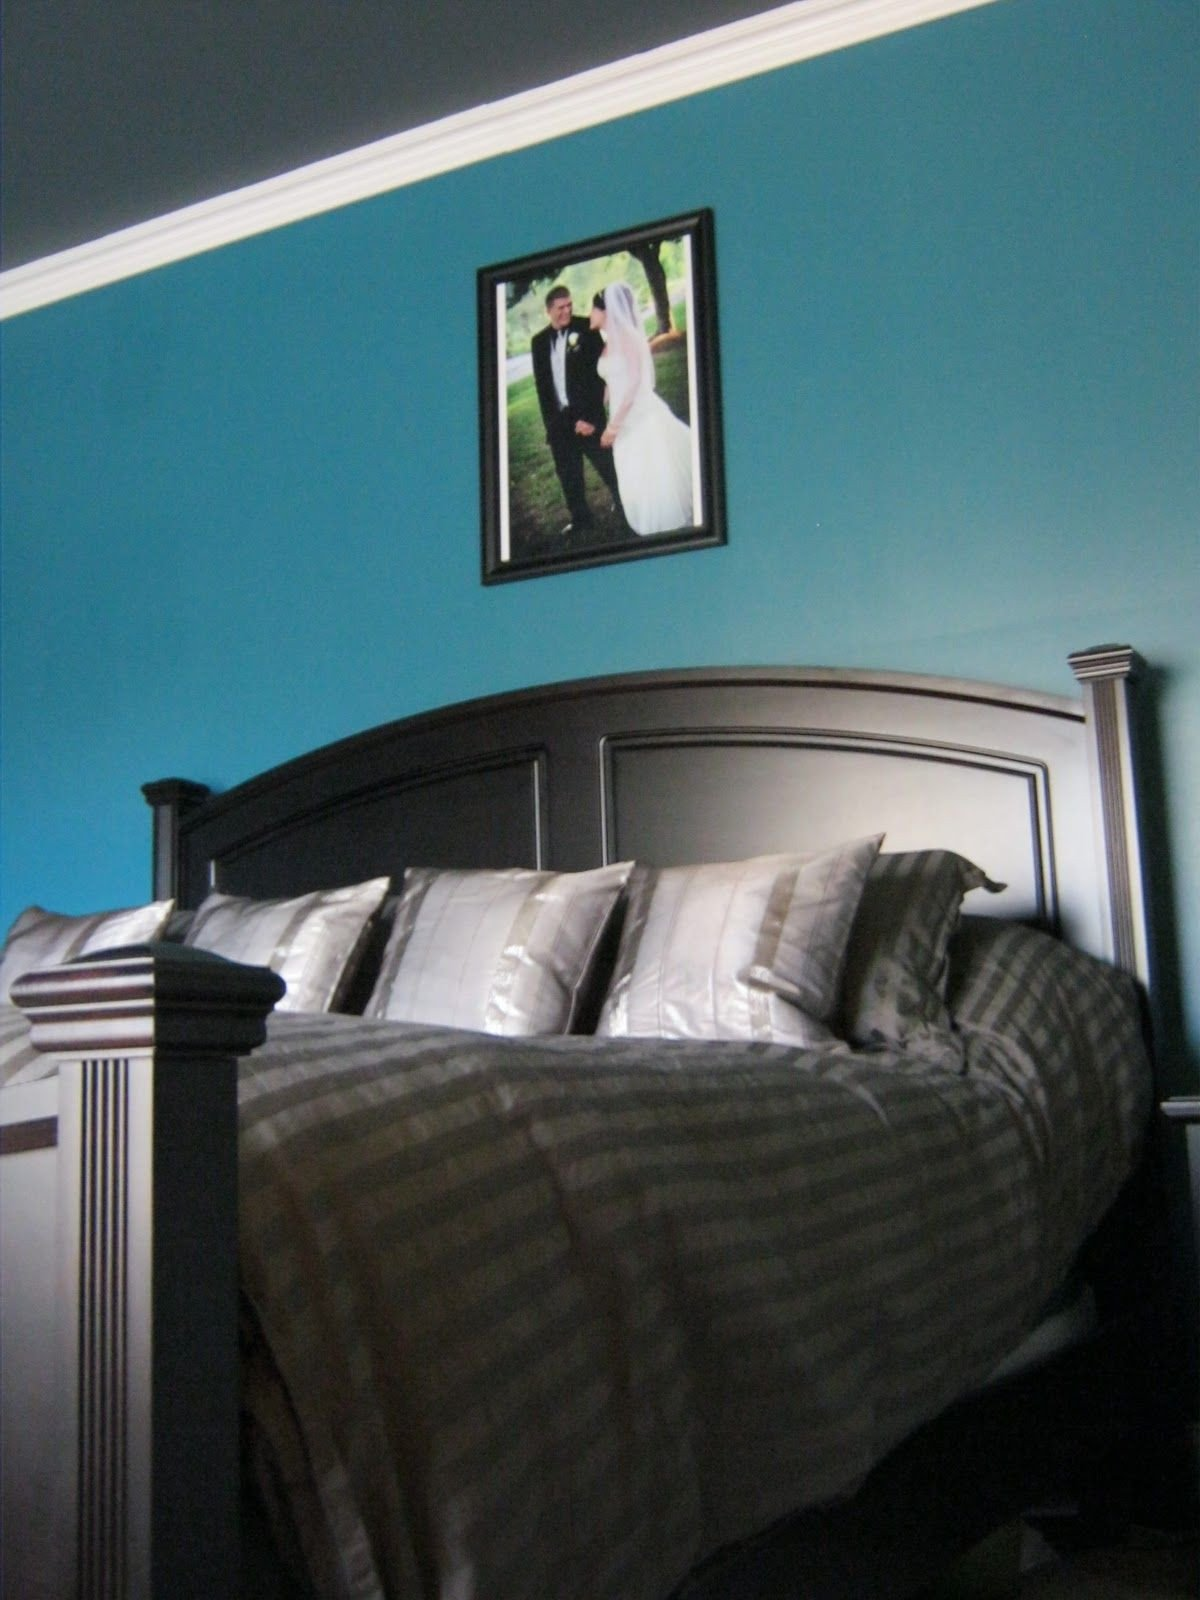 Teal and Gray Bedroom Decor Inspirational Dark Teal Bedroom Google Search Teal Bedroom